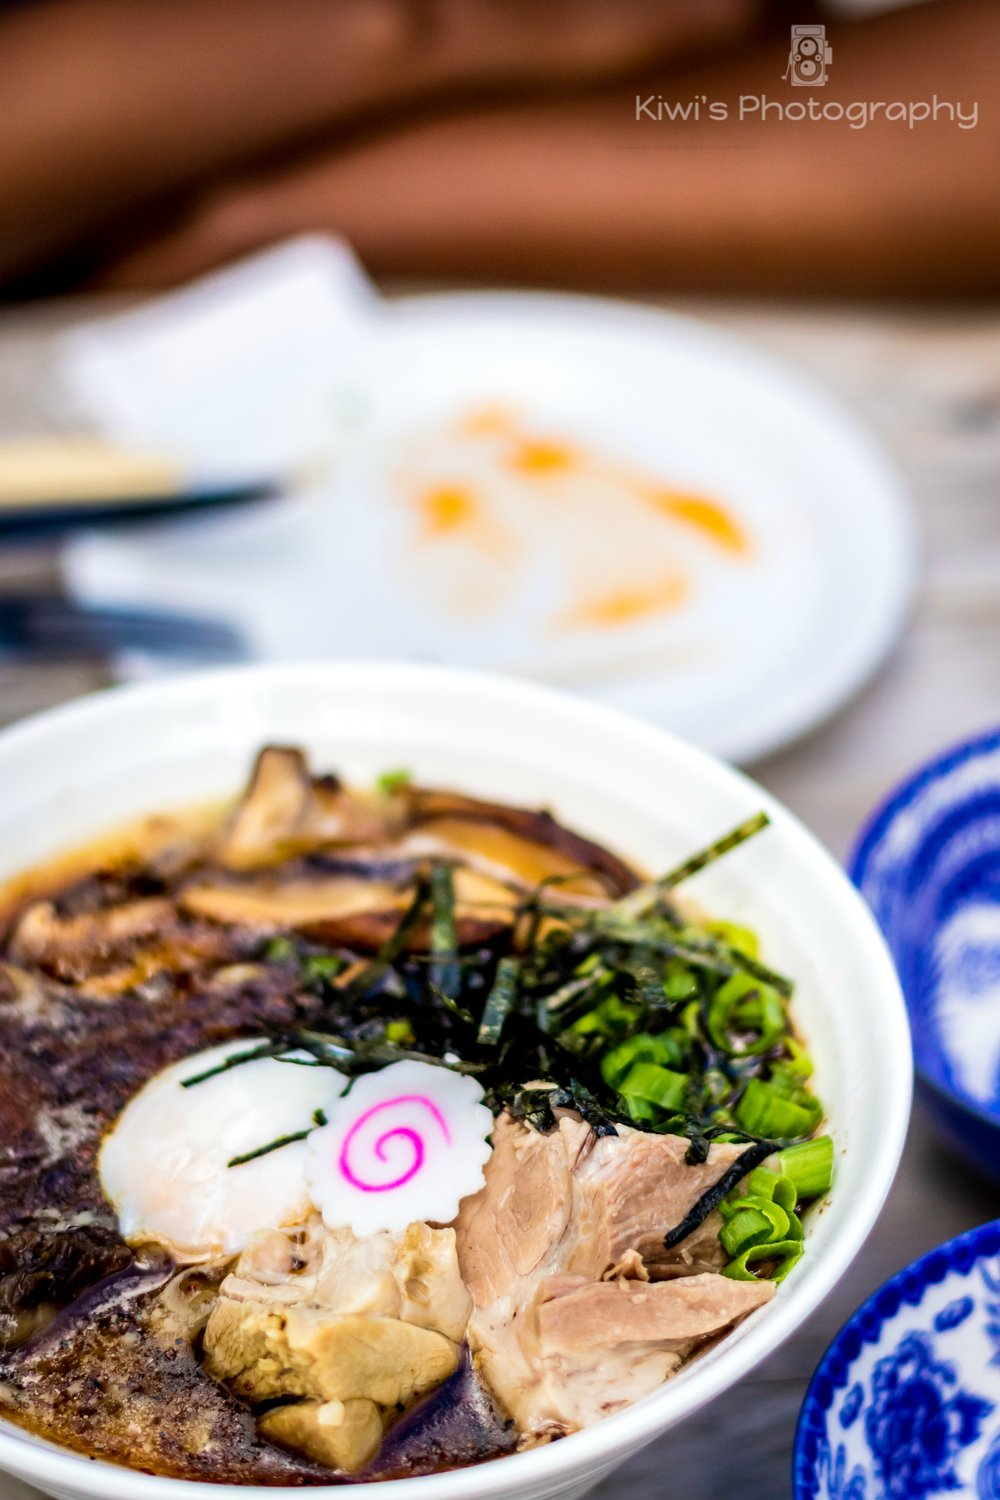 Datsun Ottawa -  Tonkotsu Ramen with Pork Loin and Shoulder, Egg, Black Garlic .